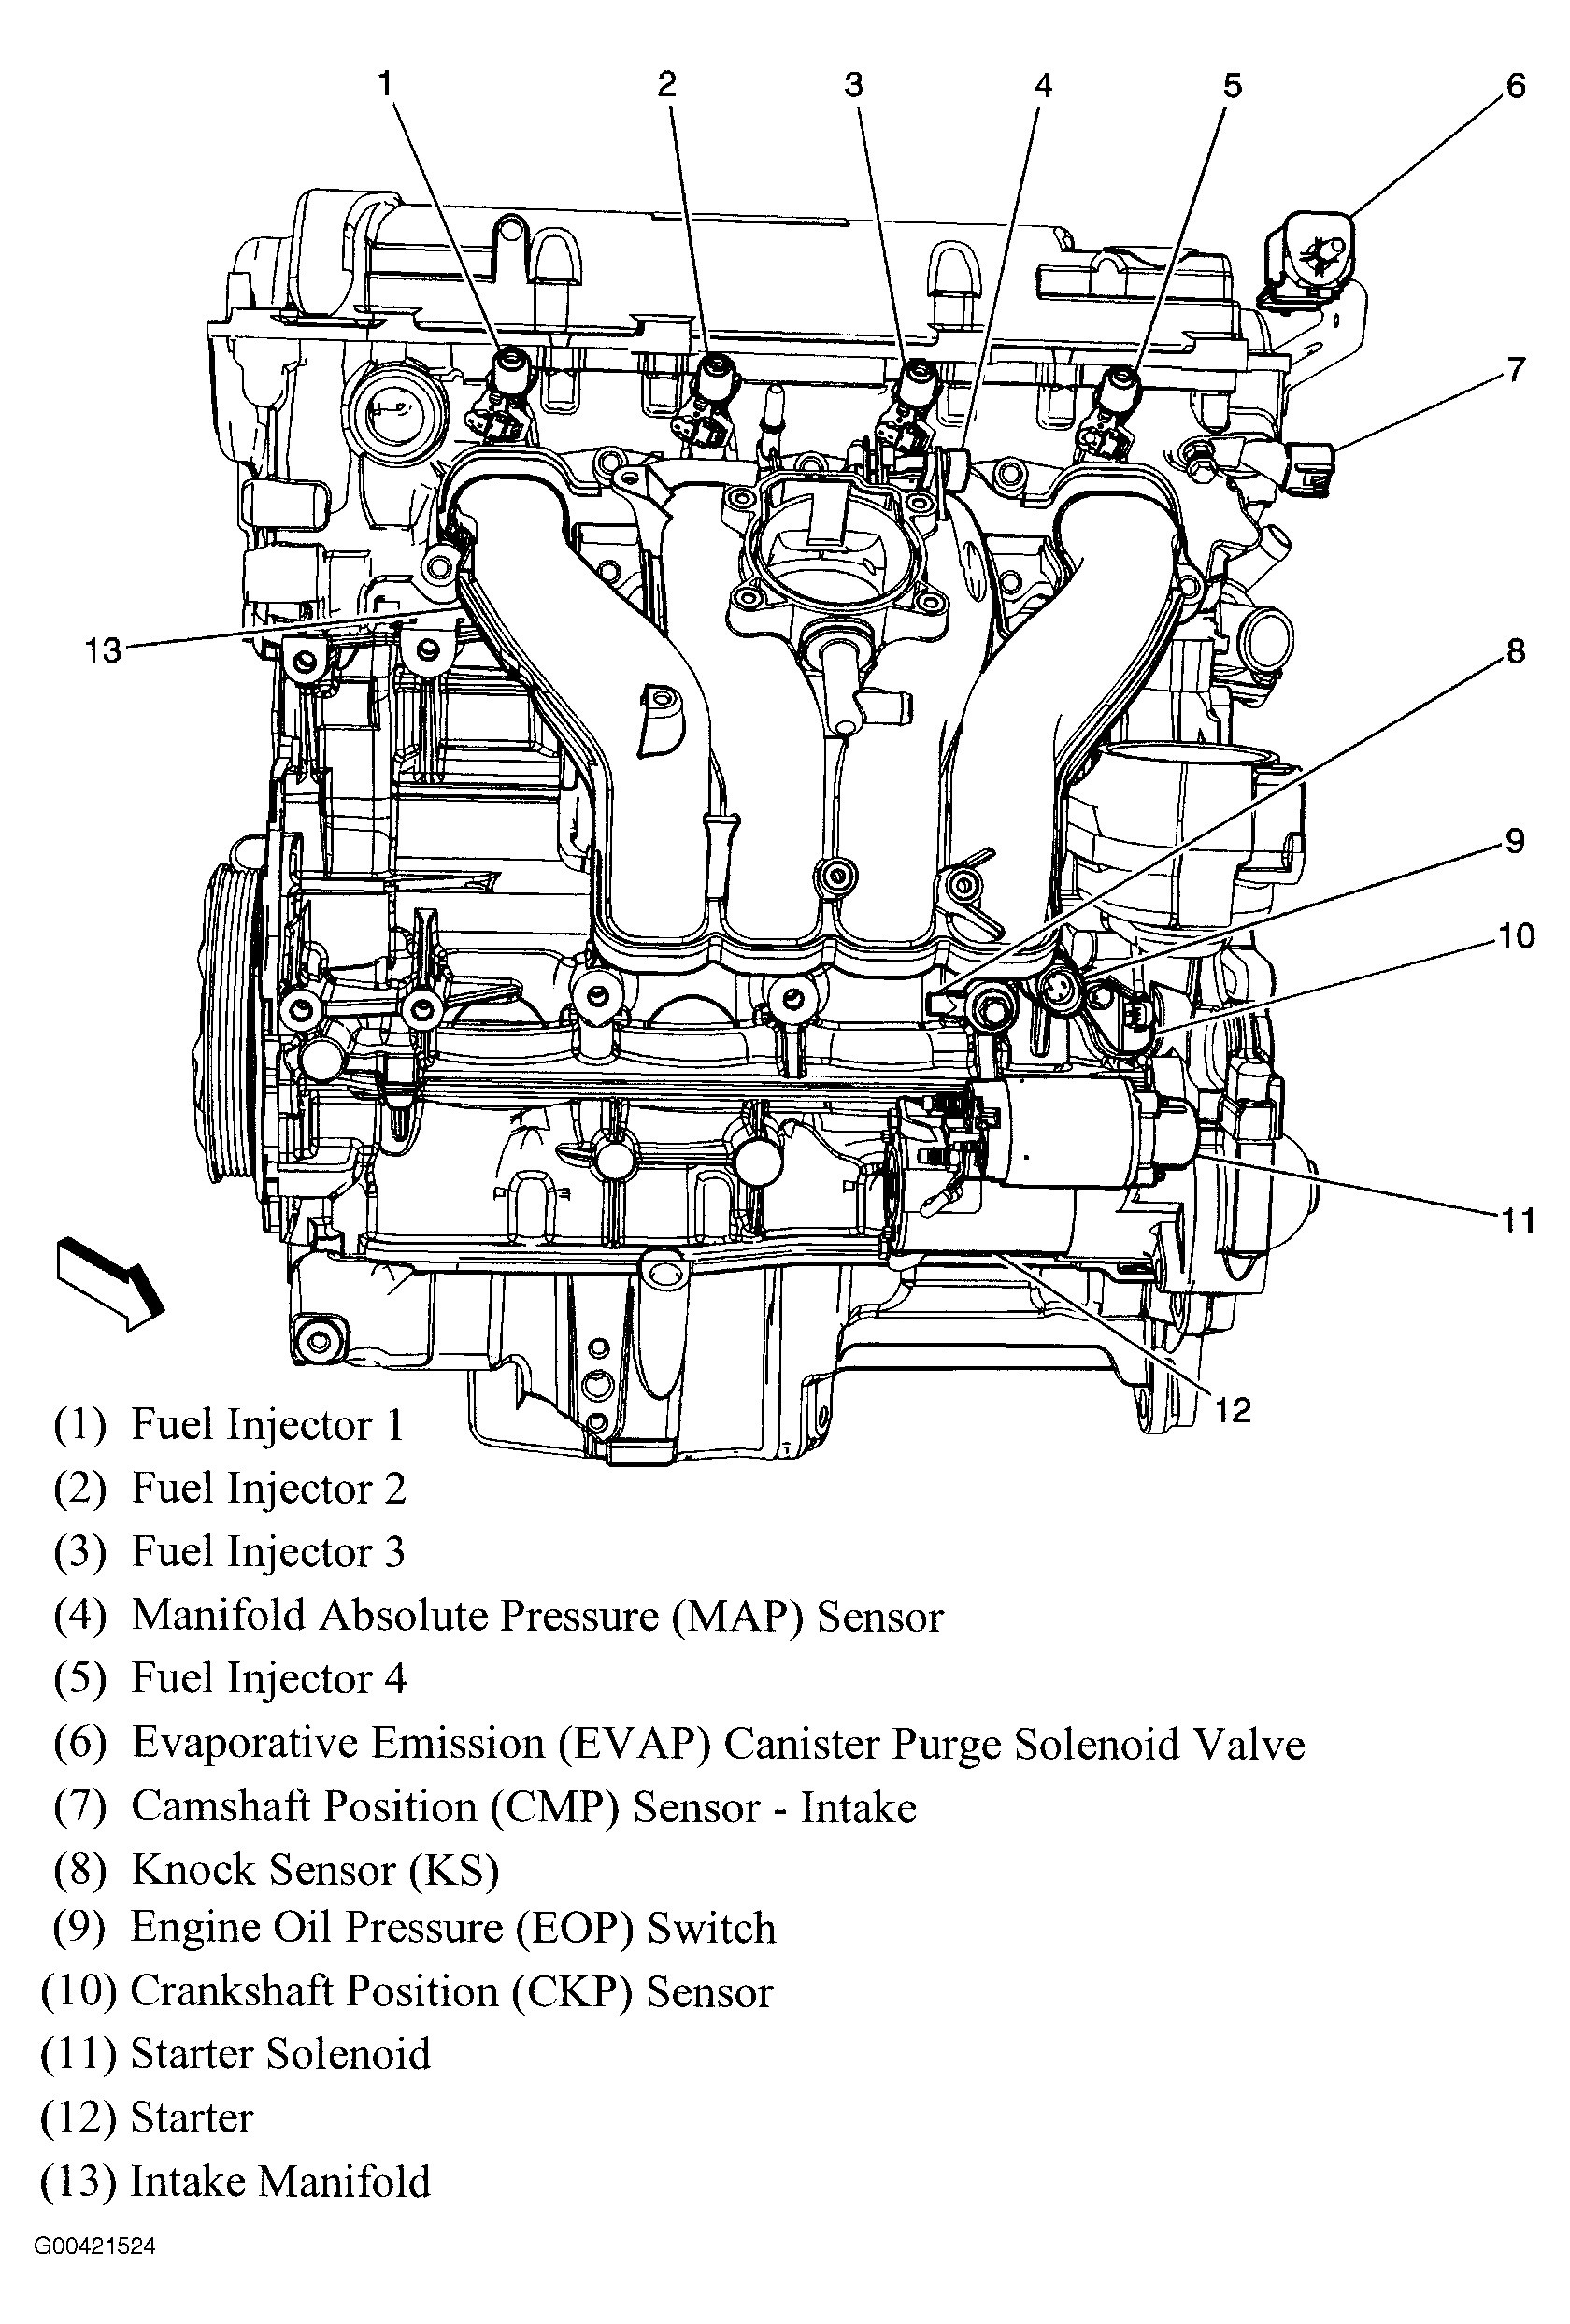 roger vivi ersaks: 2007 Uplander Engine Diagram